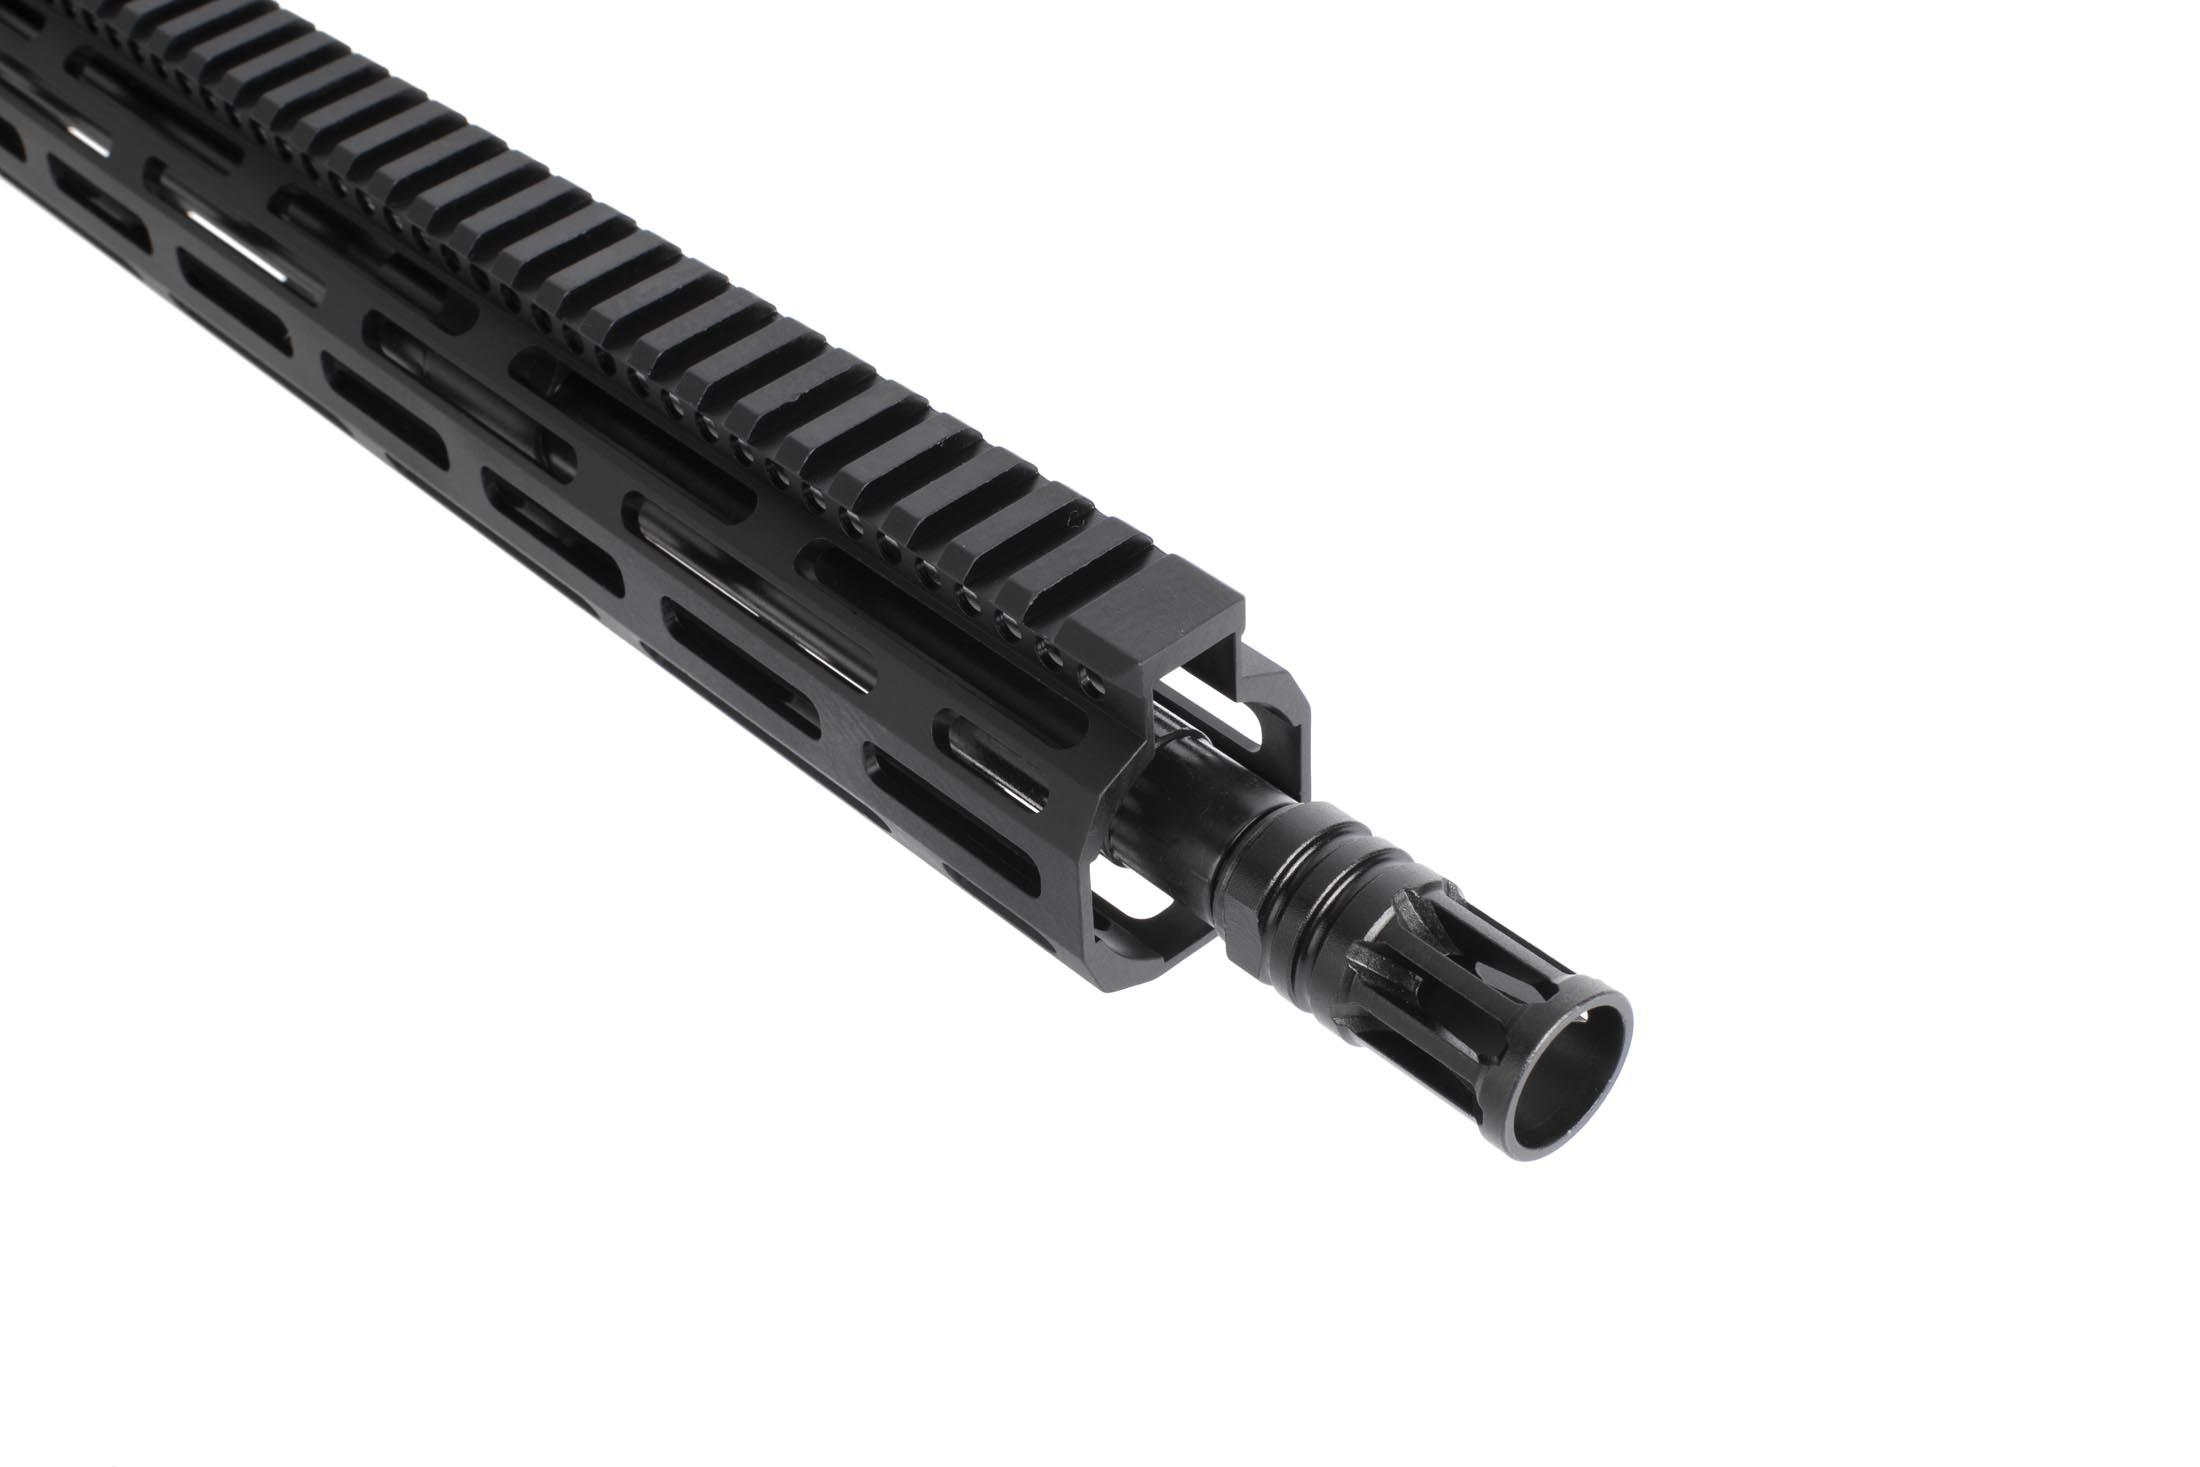 Radical Firearms 16in complete 5.56 NATO Ar 15 upper receiver is topped with 1/2x28 threading and an effective A2 flash hider